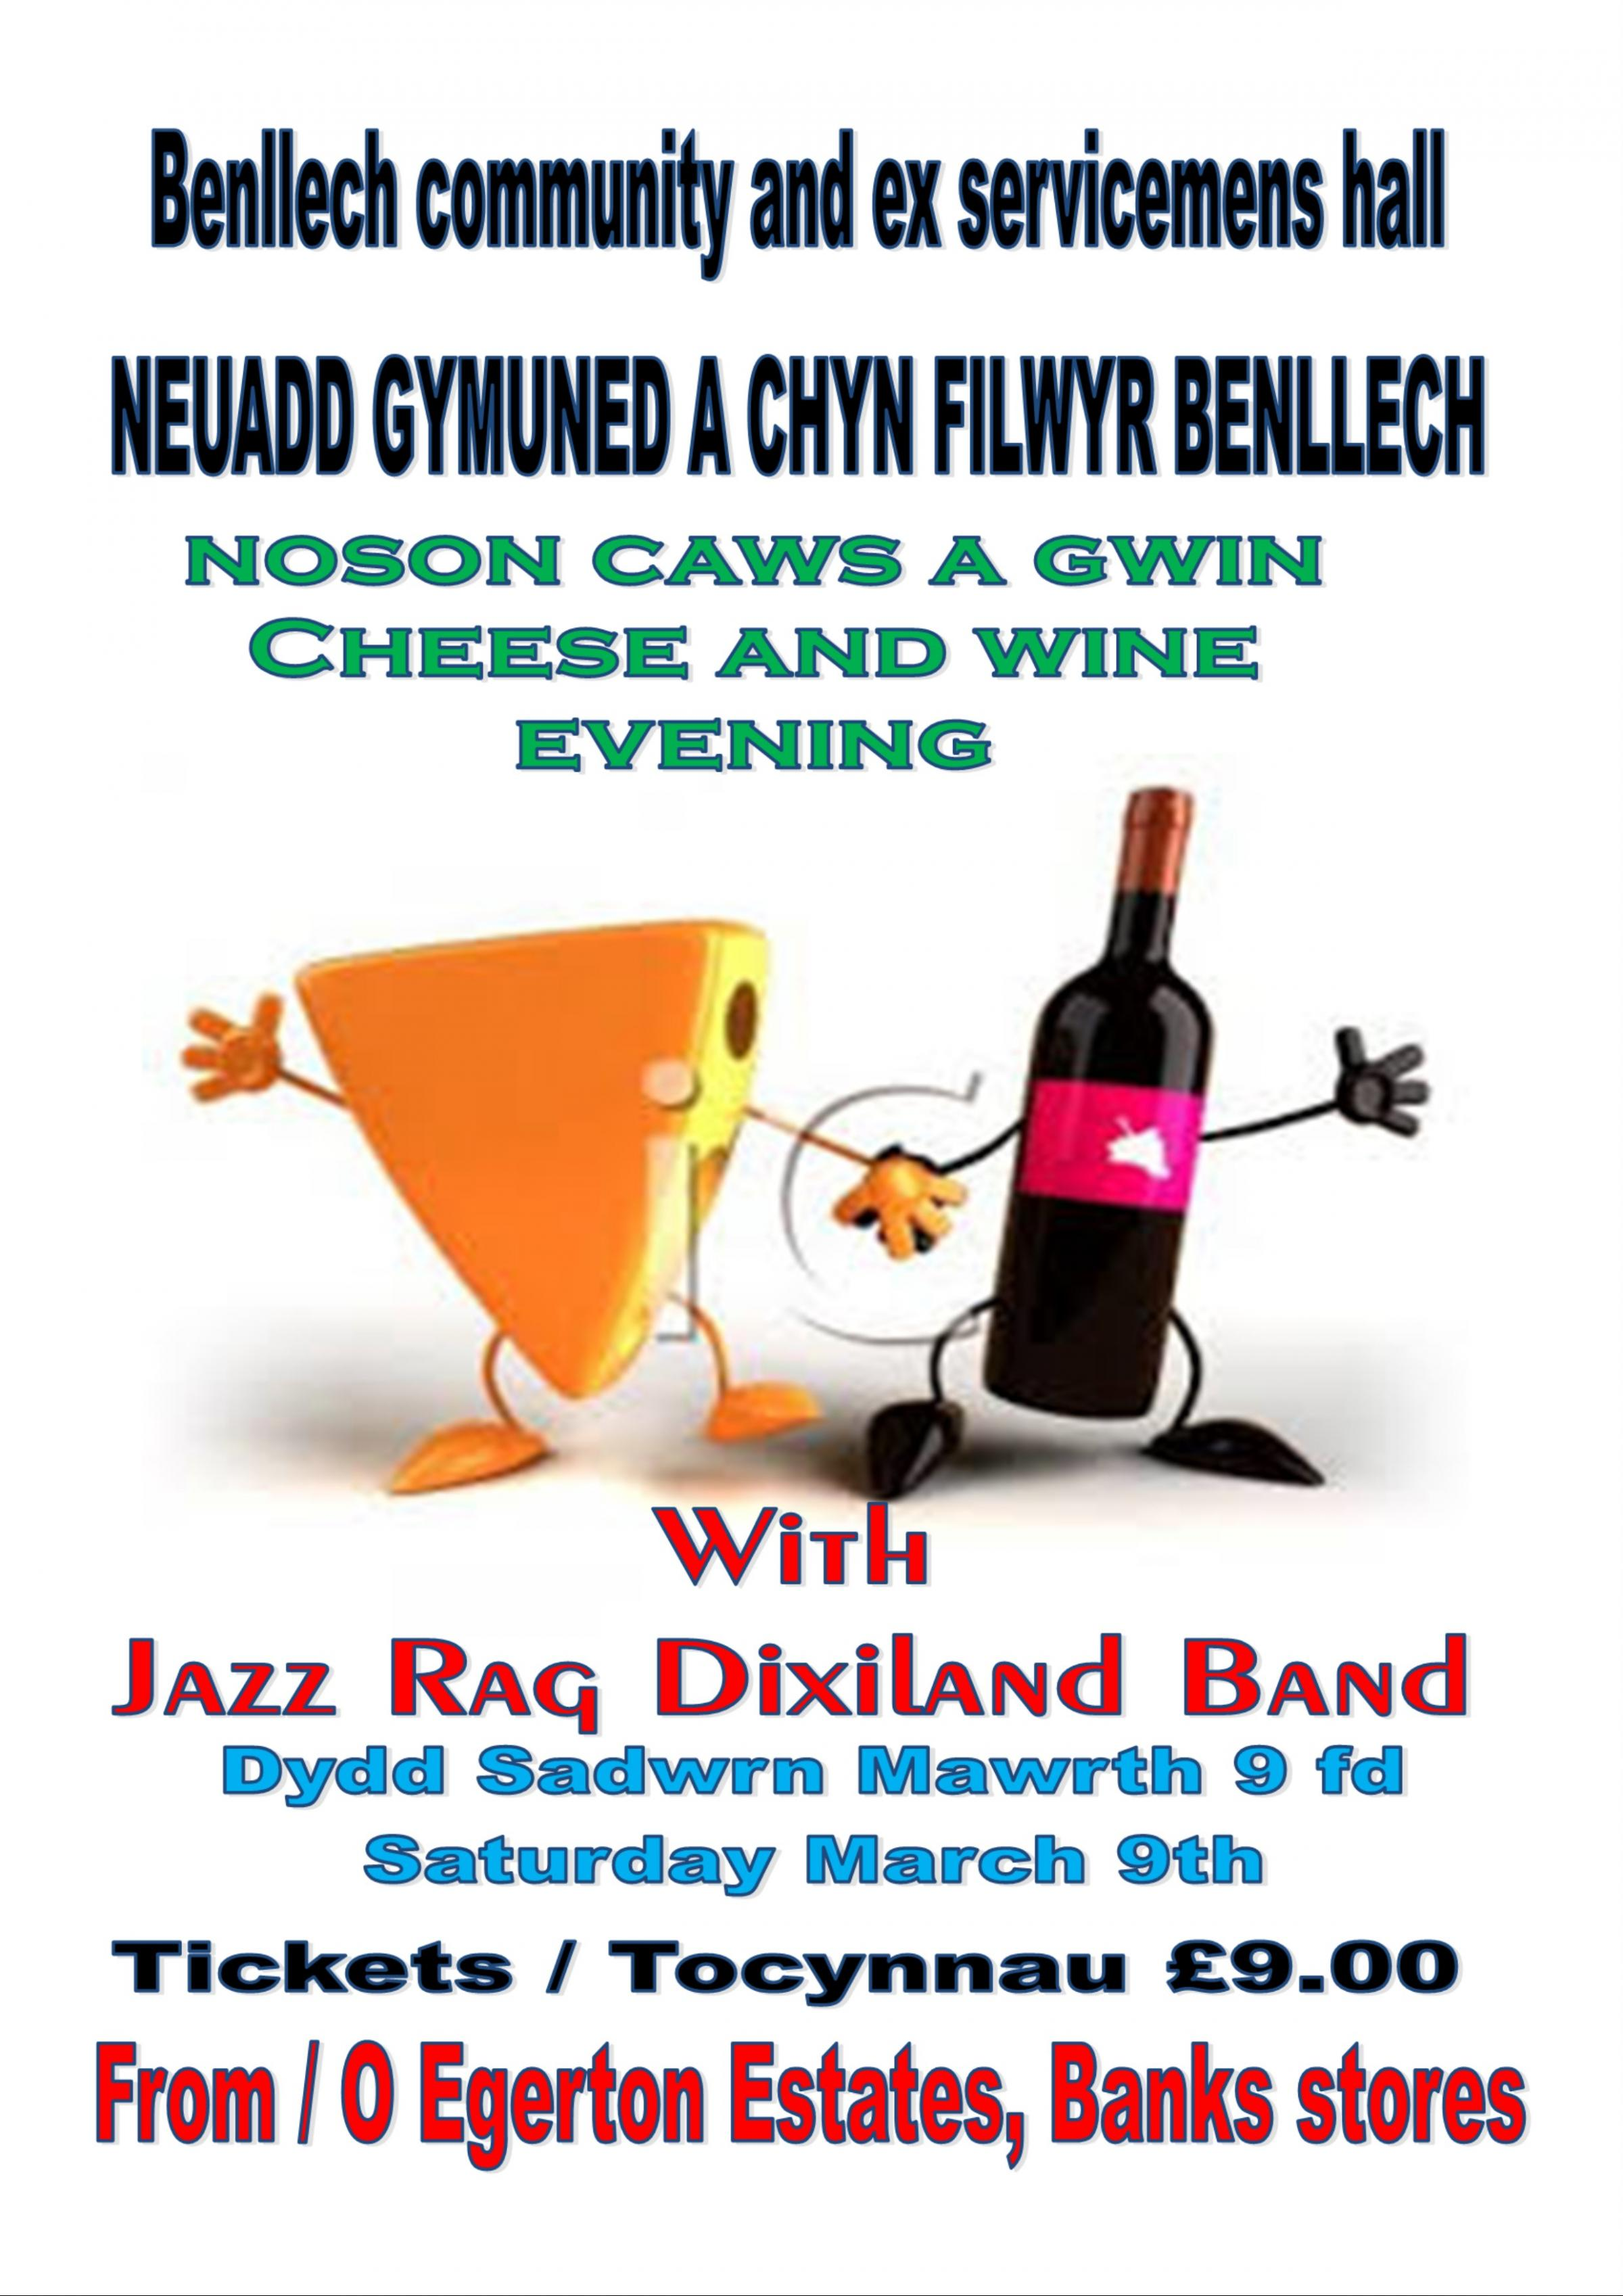 Cheese and wine evening with Jazz Rag Dixiland band